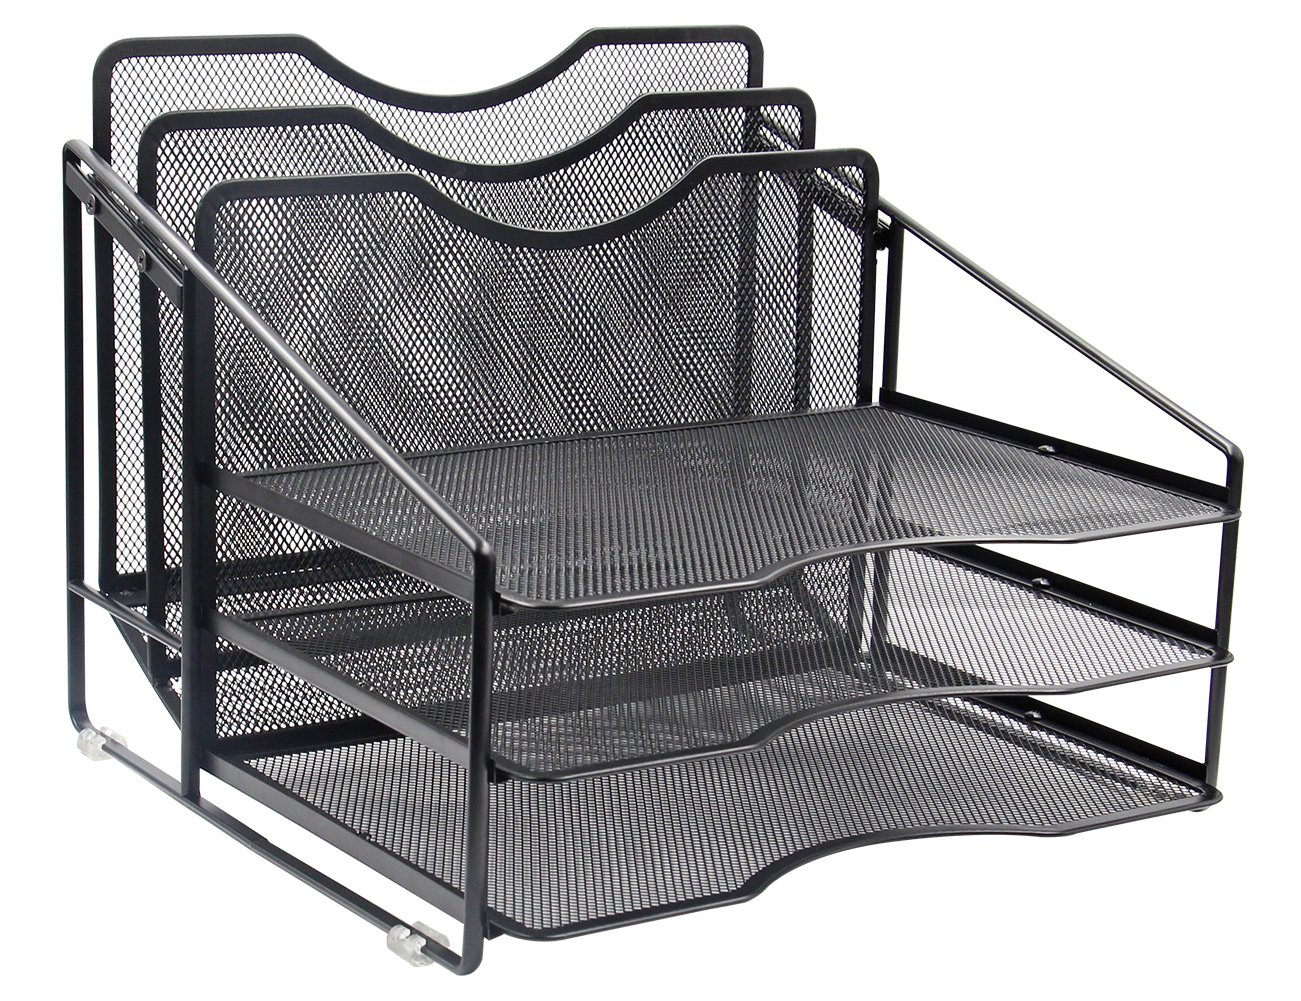 EasyPAG Mesh Desk File Organizer Sorter with 3 Horizontal and 2 Upright Black